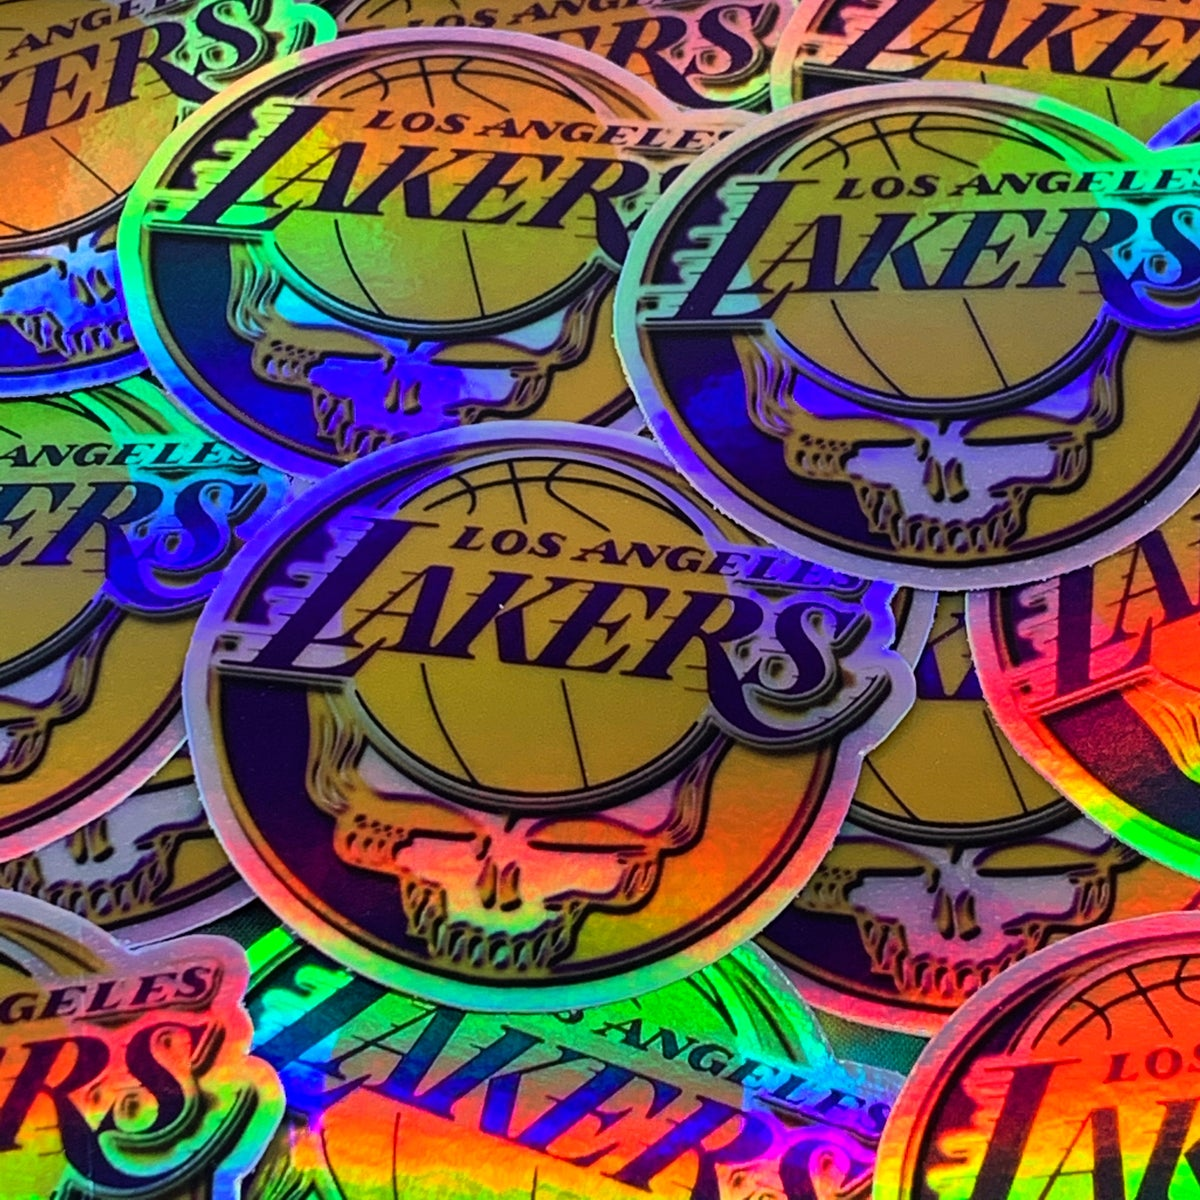 Lakers Holographic Stickers!